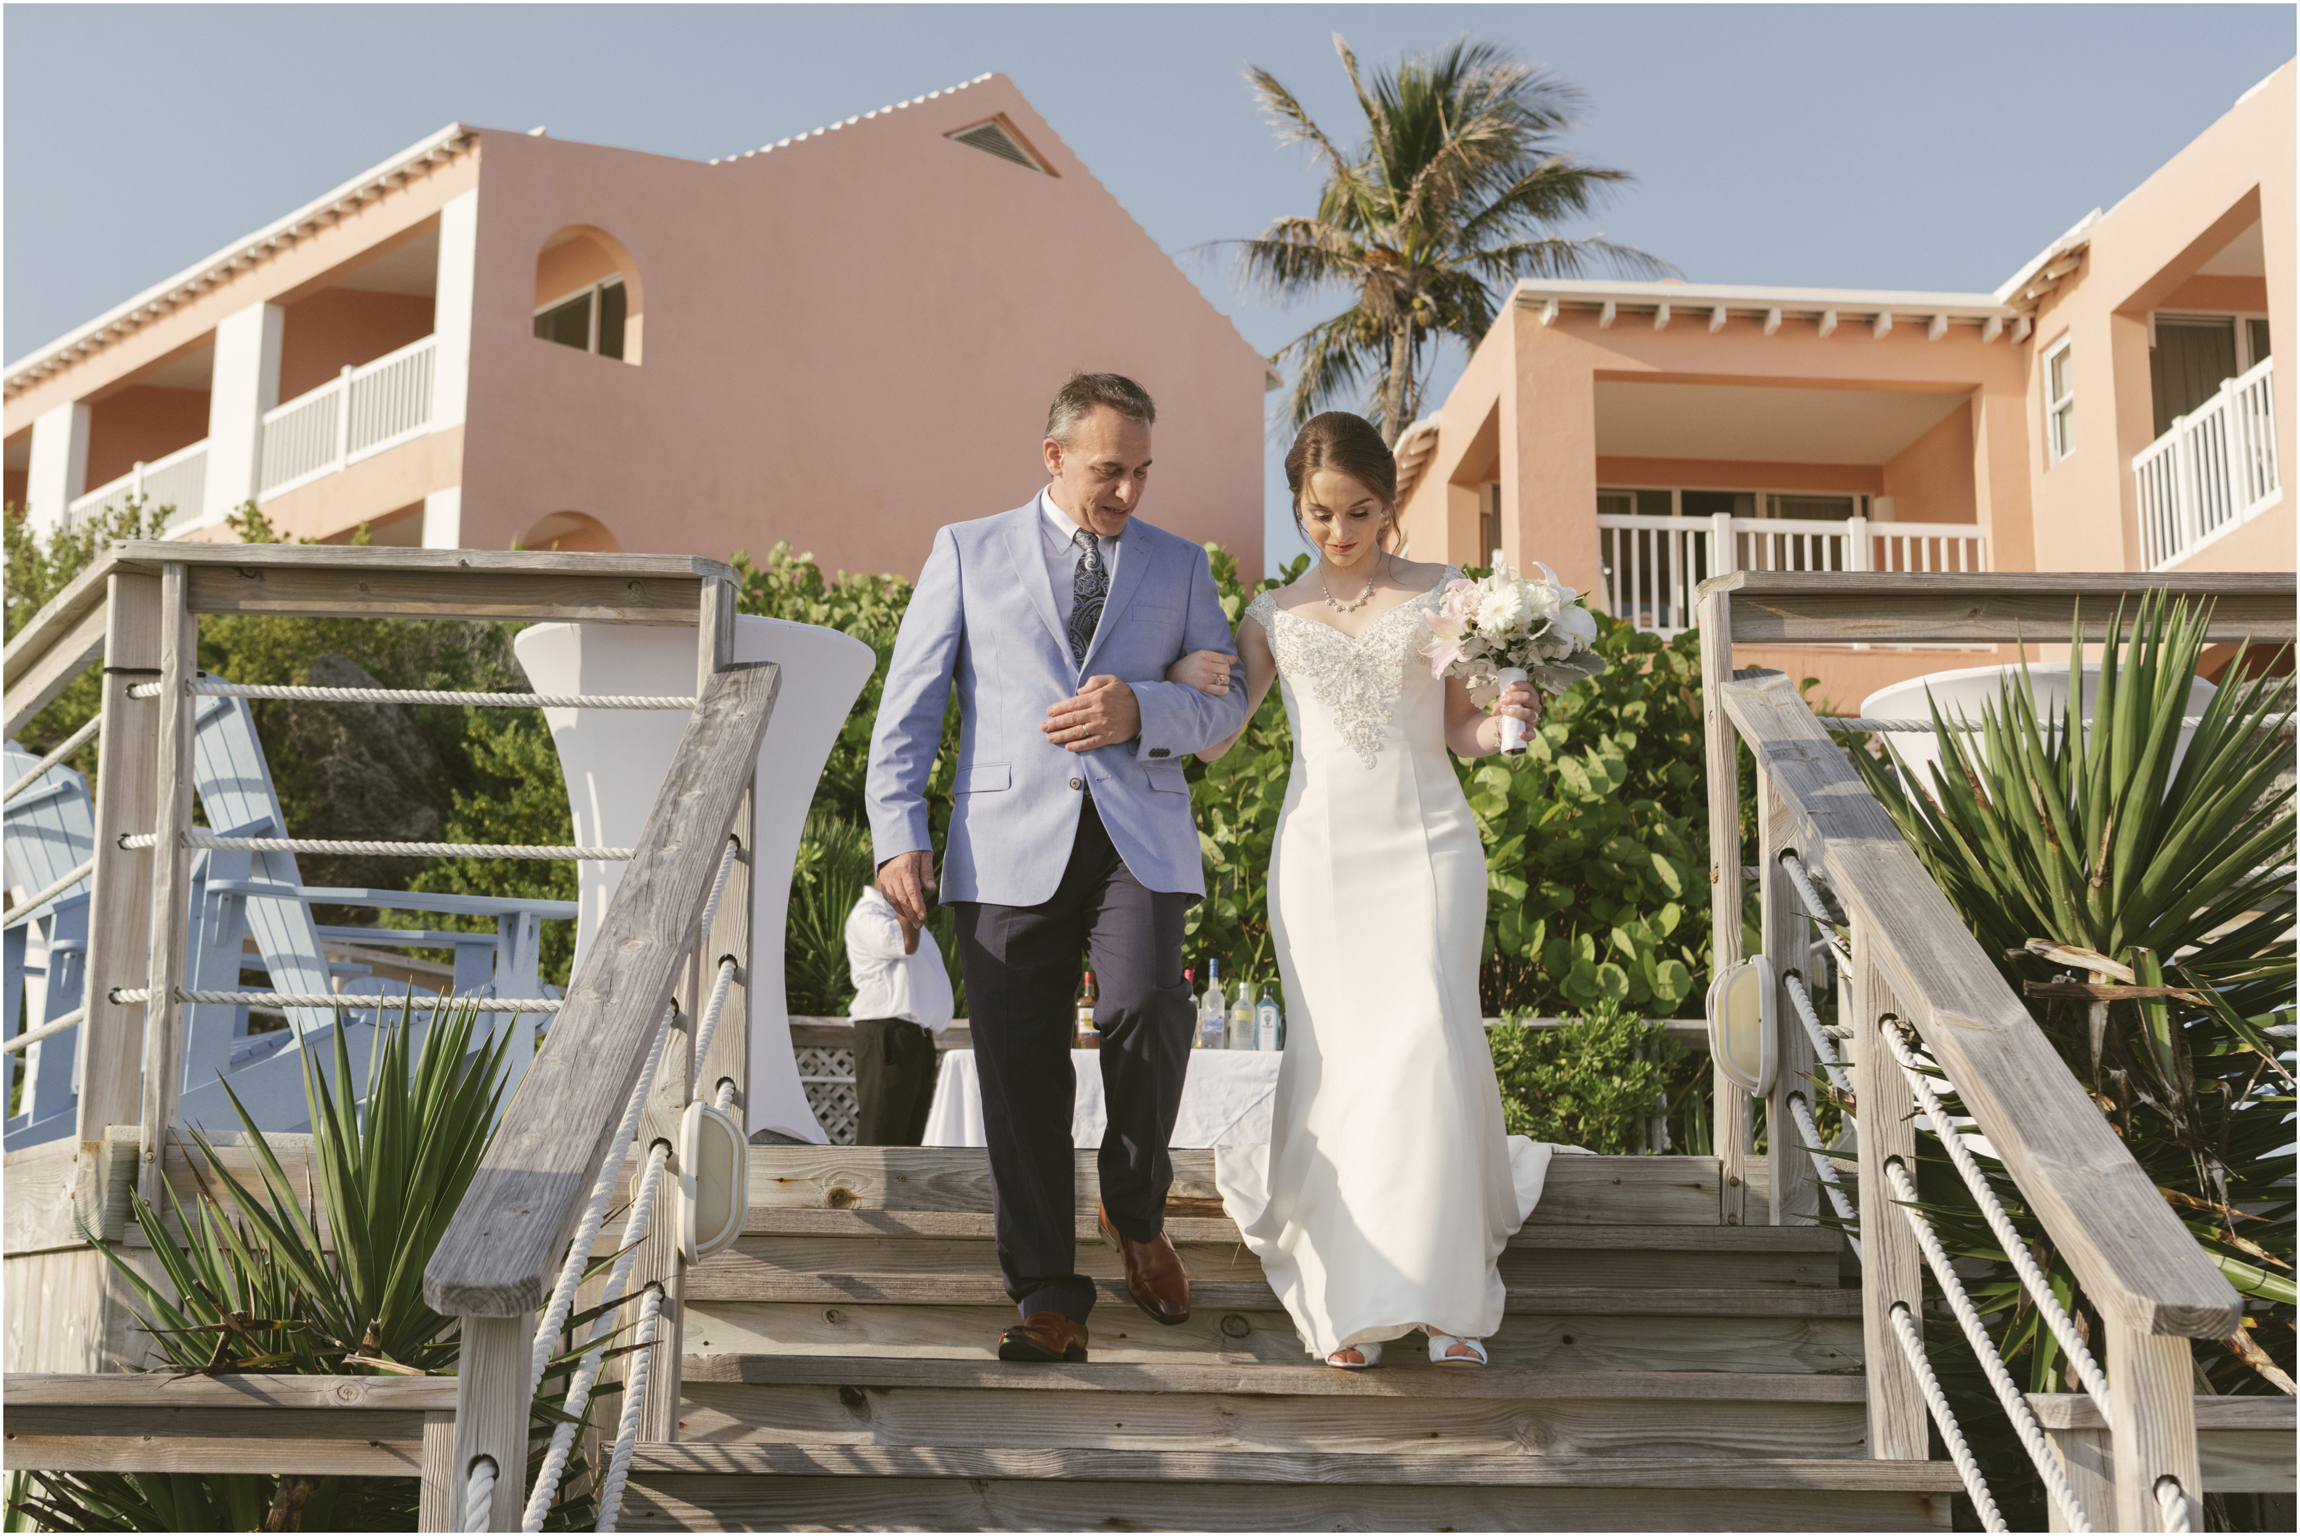 ©FianderFoto_Caribbean_Wedding_Photographer_The Reefs_Bermuda_Lauren_Erik_051.jpg